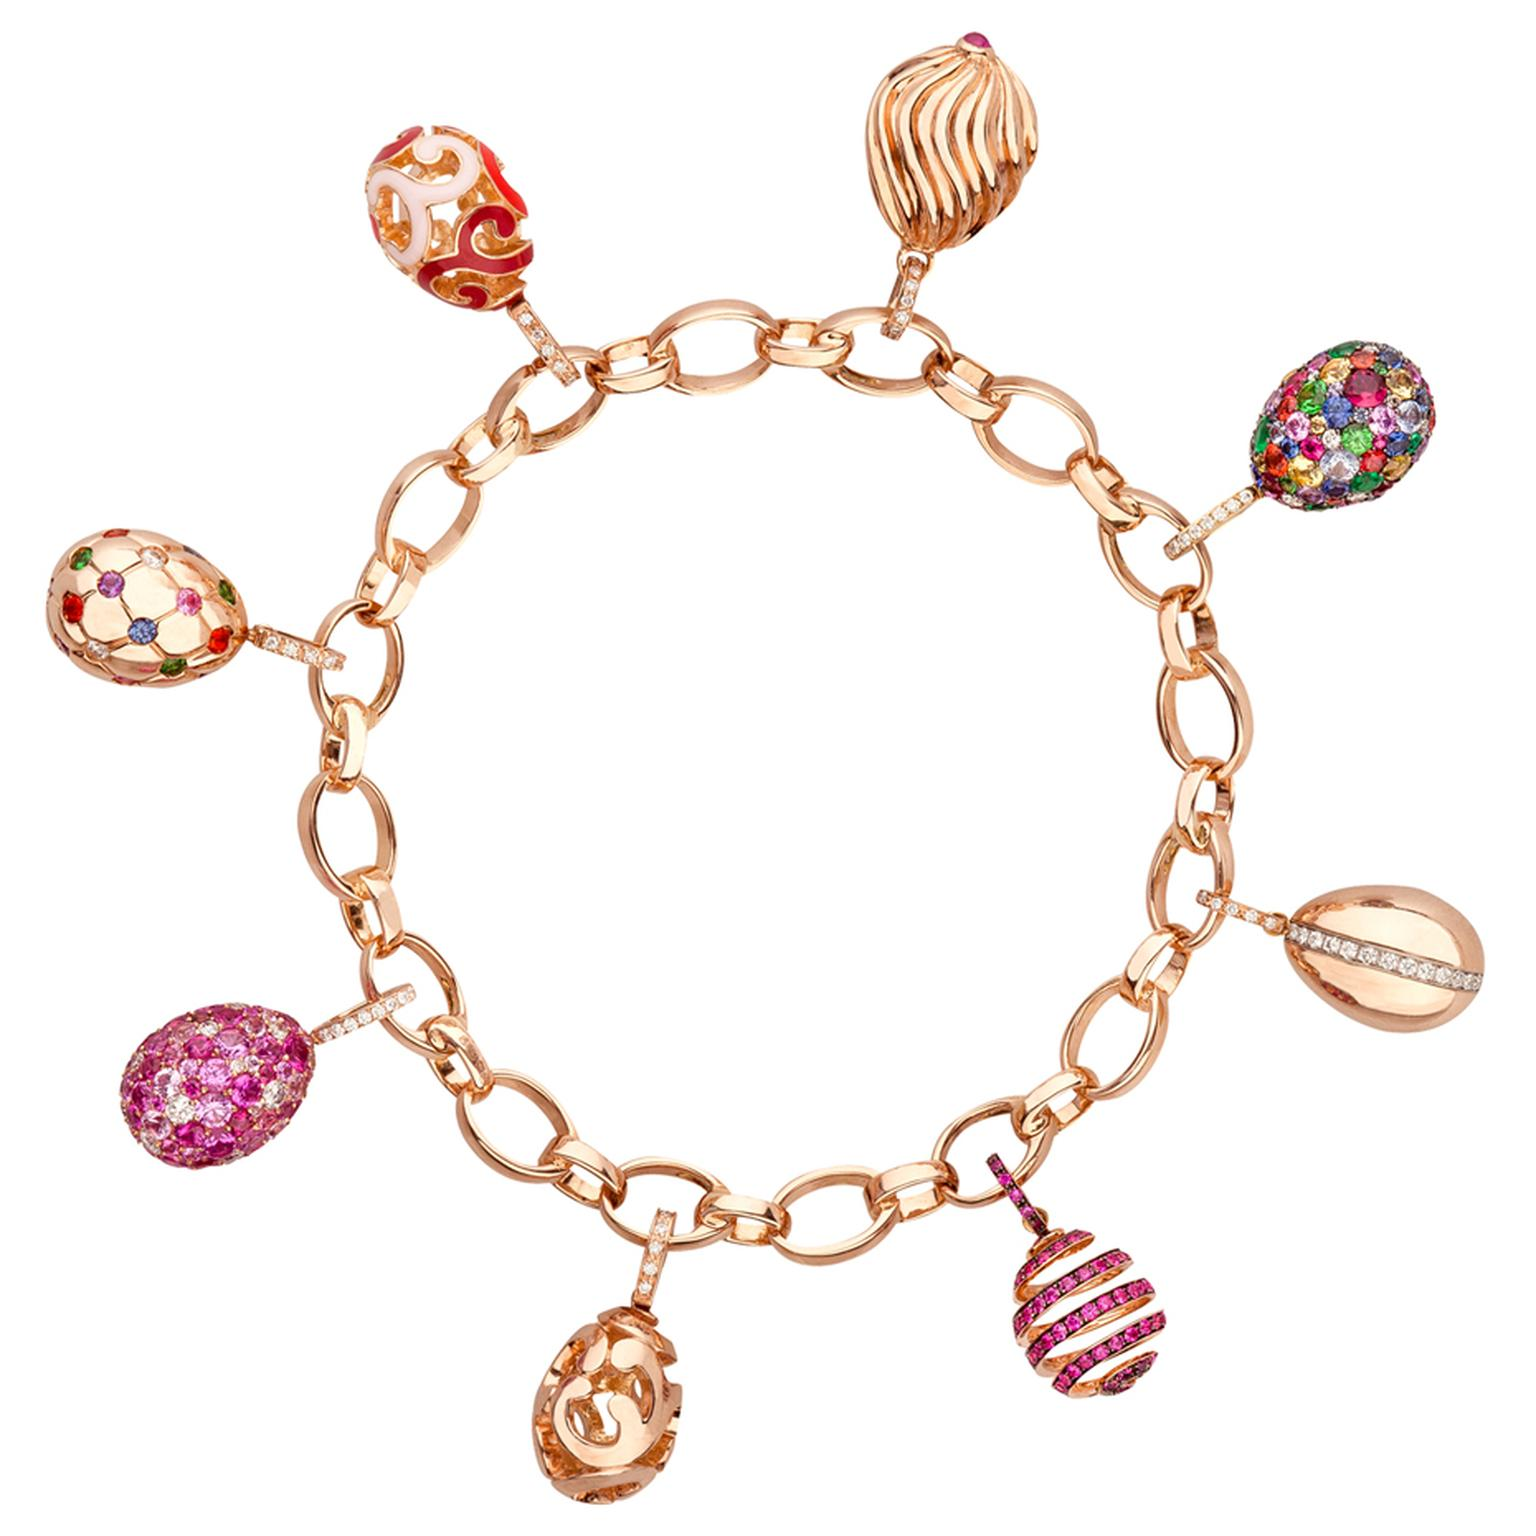 Fabergé rose gold charm bracelet featuring sapphires, amethysts, diamonds, enamel and other coloured gemstones.